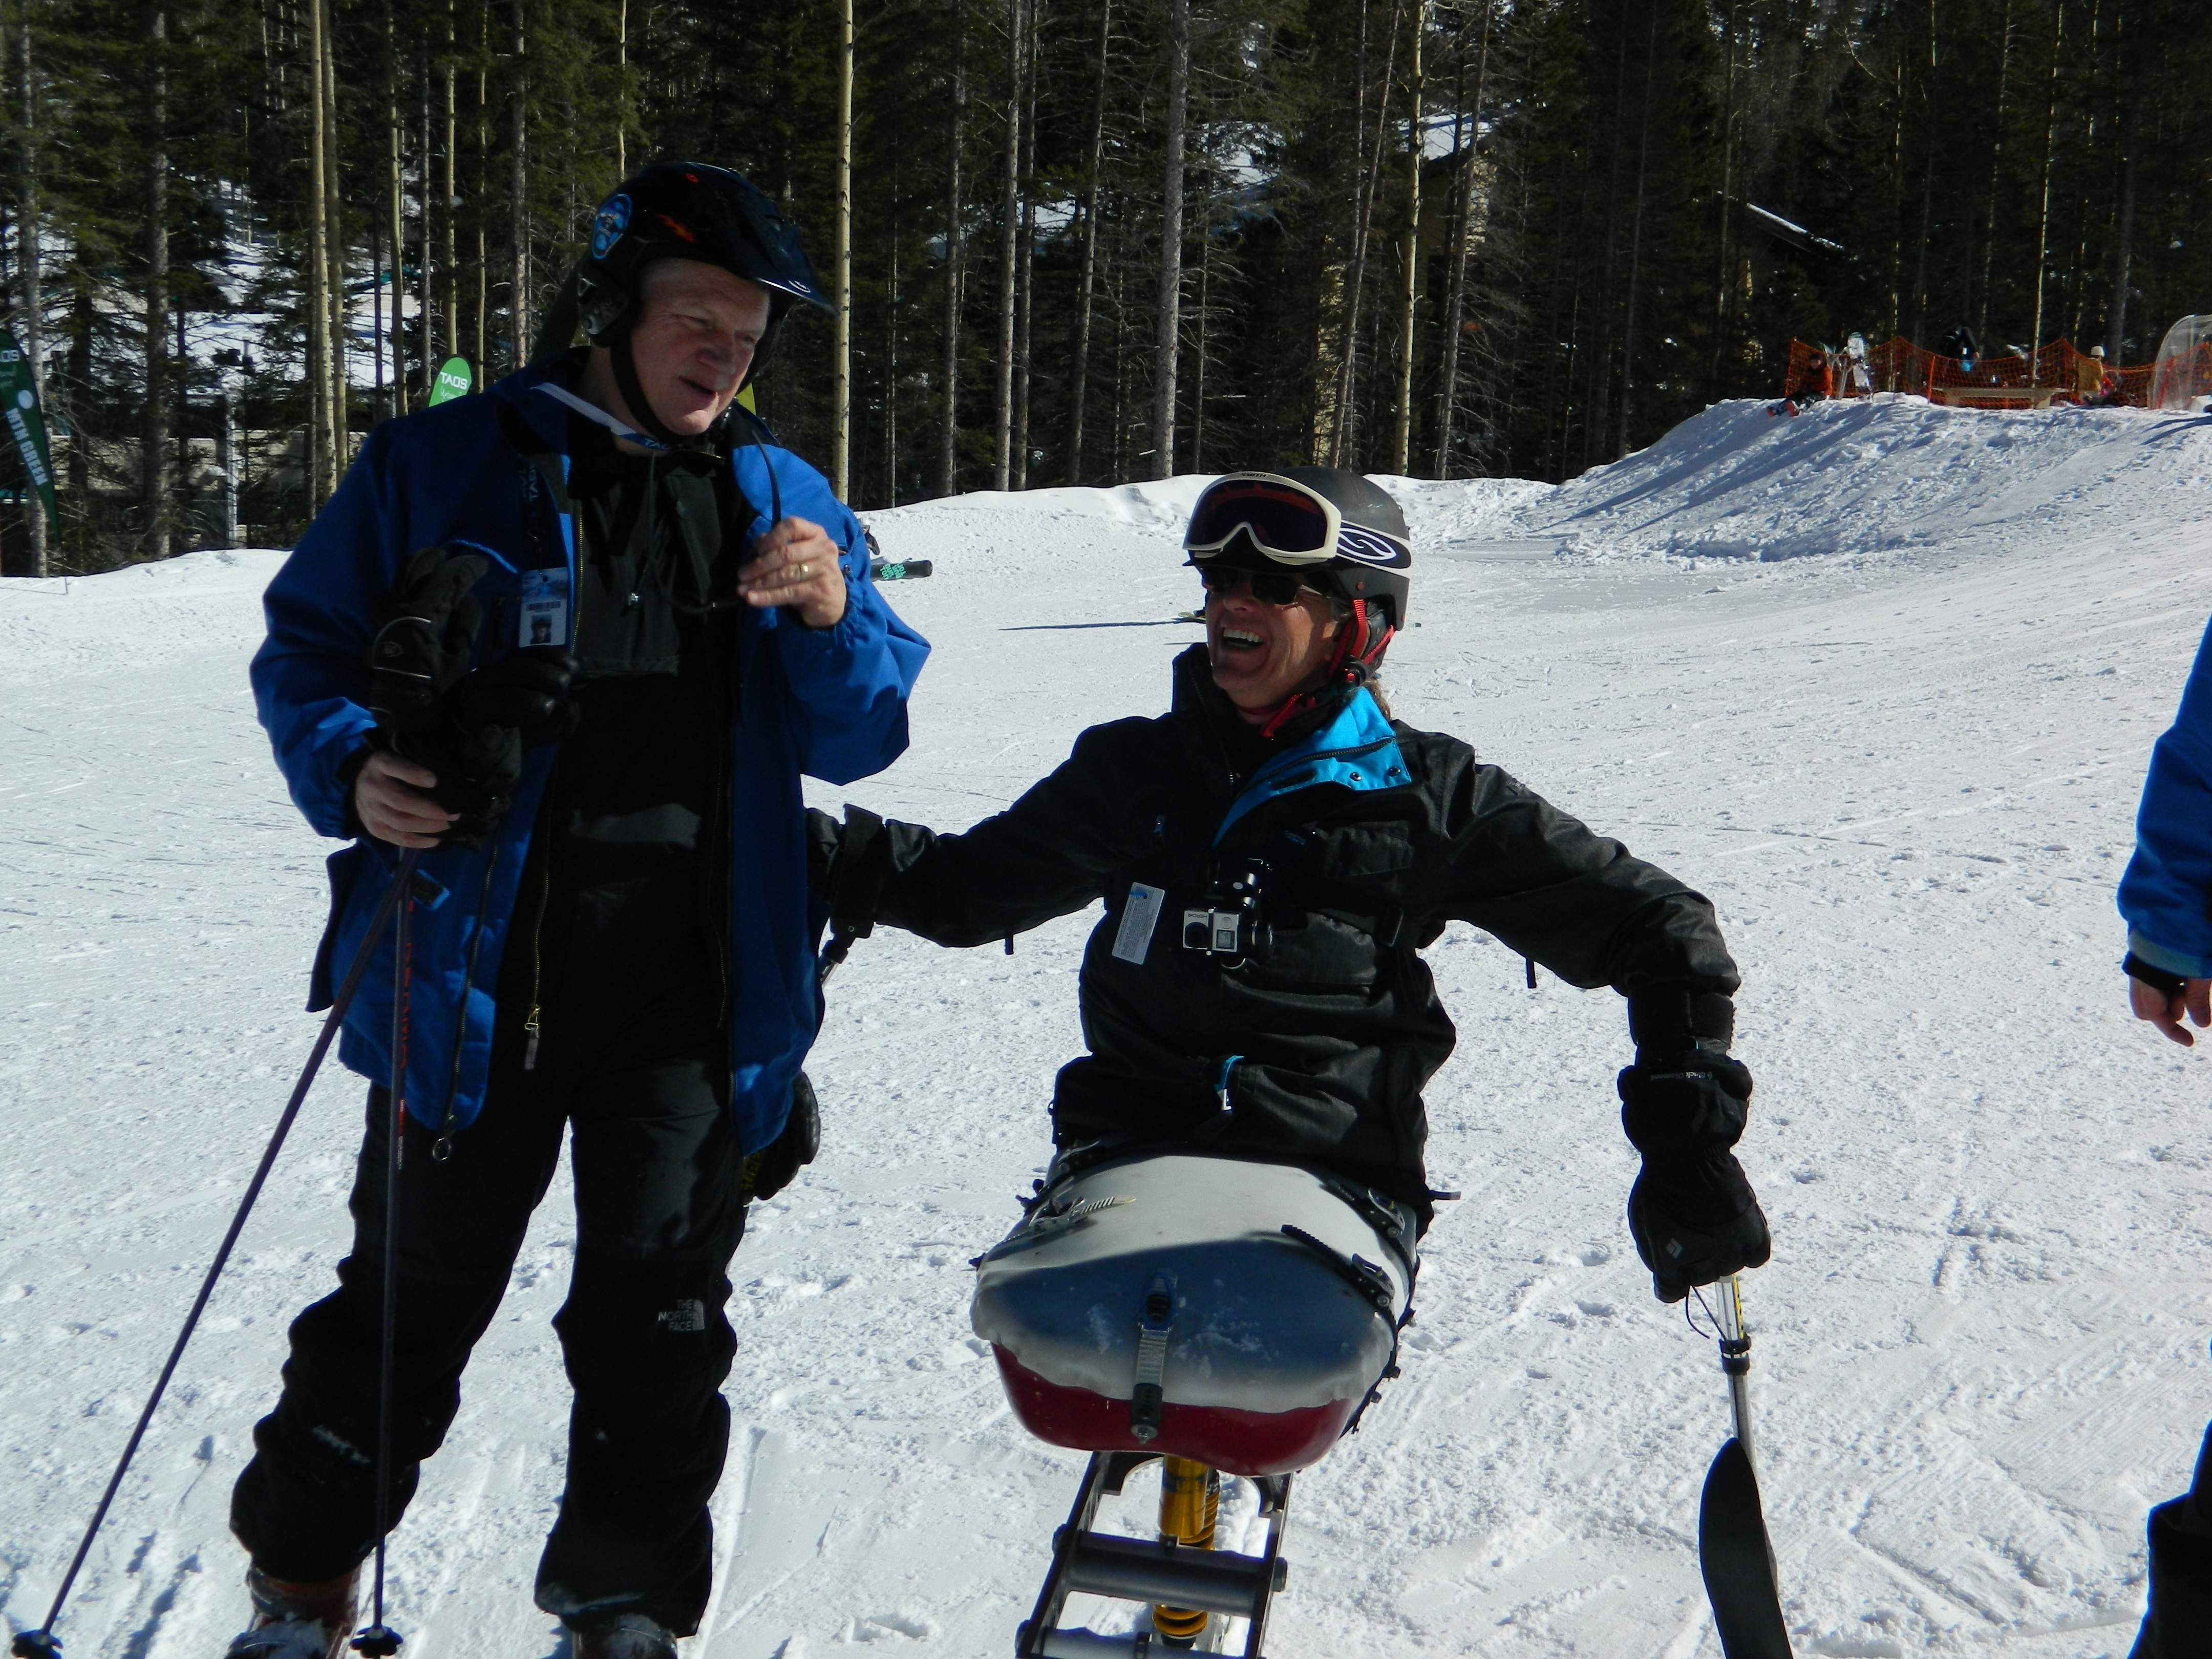 Laughing disabled skier in ski chair jokes with another skier on the slopes at Taos Ski Valley. Wintry forest behind.